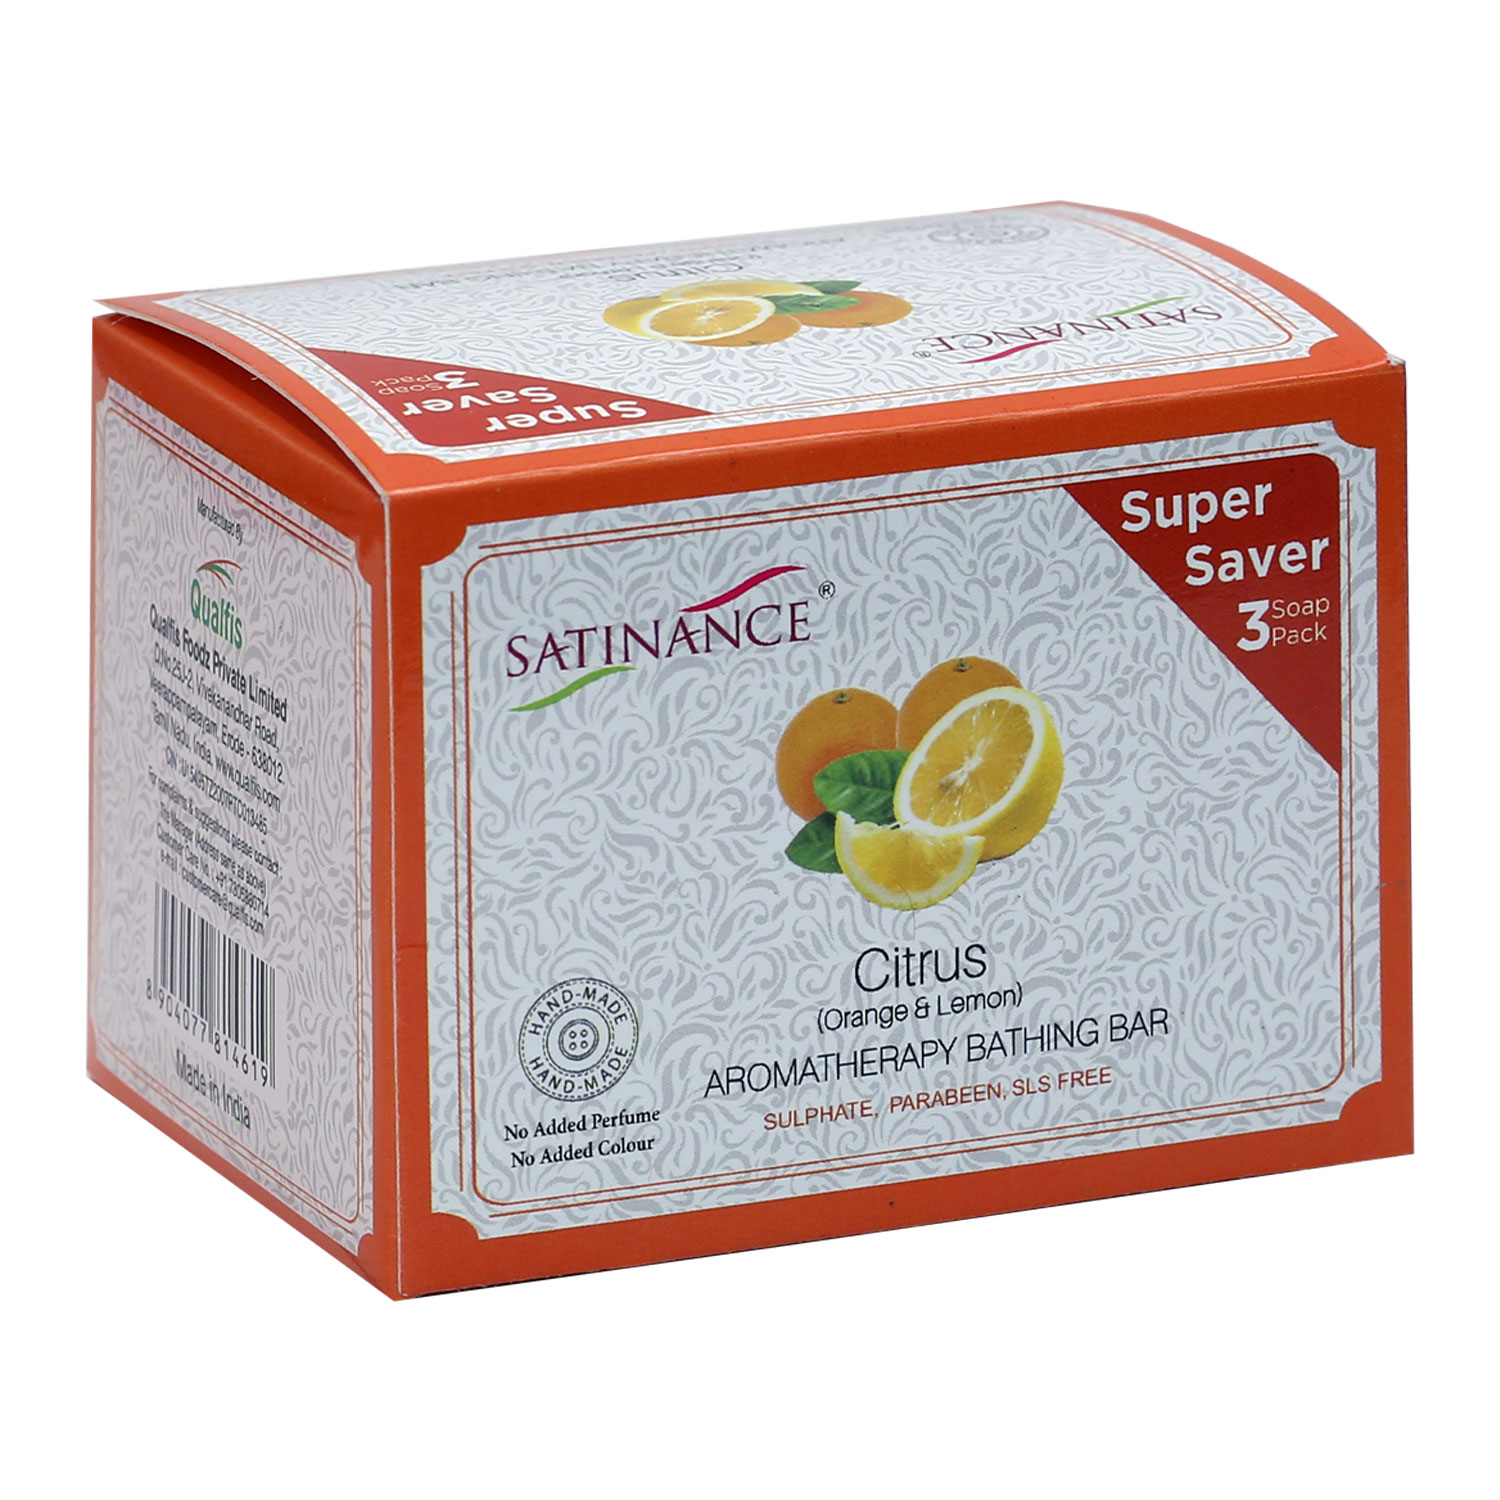 Citrus (Orange & Lemon) Aromatherapy Bathing Bar 300g (100g*3) Super Saver Pack